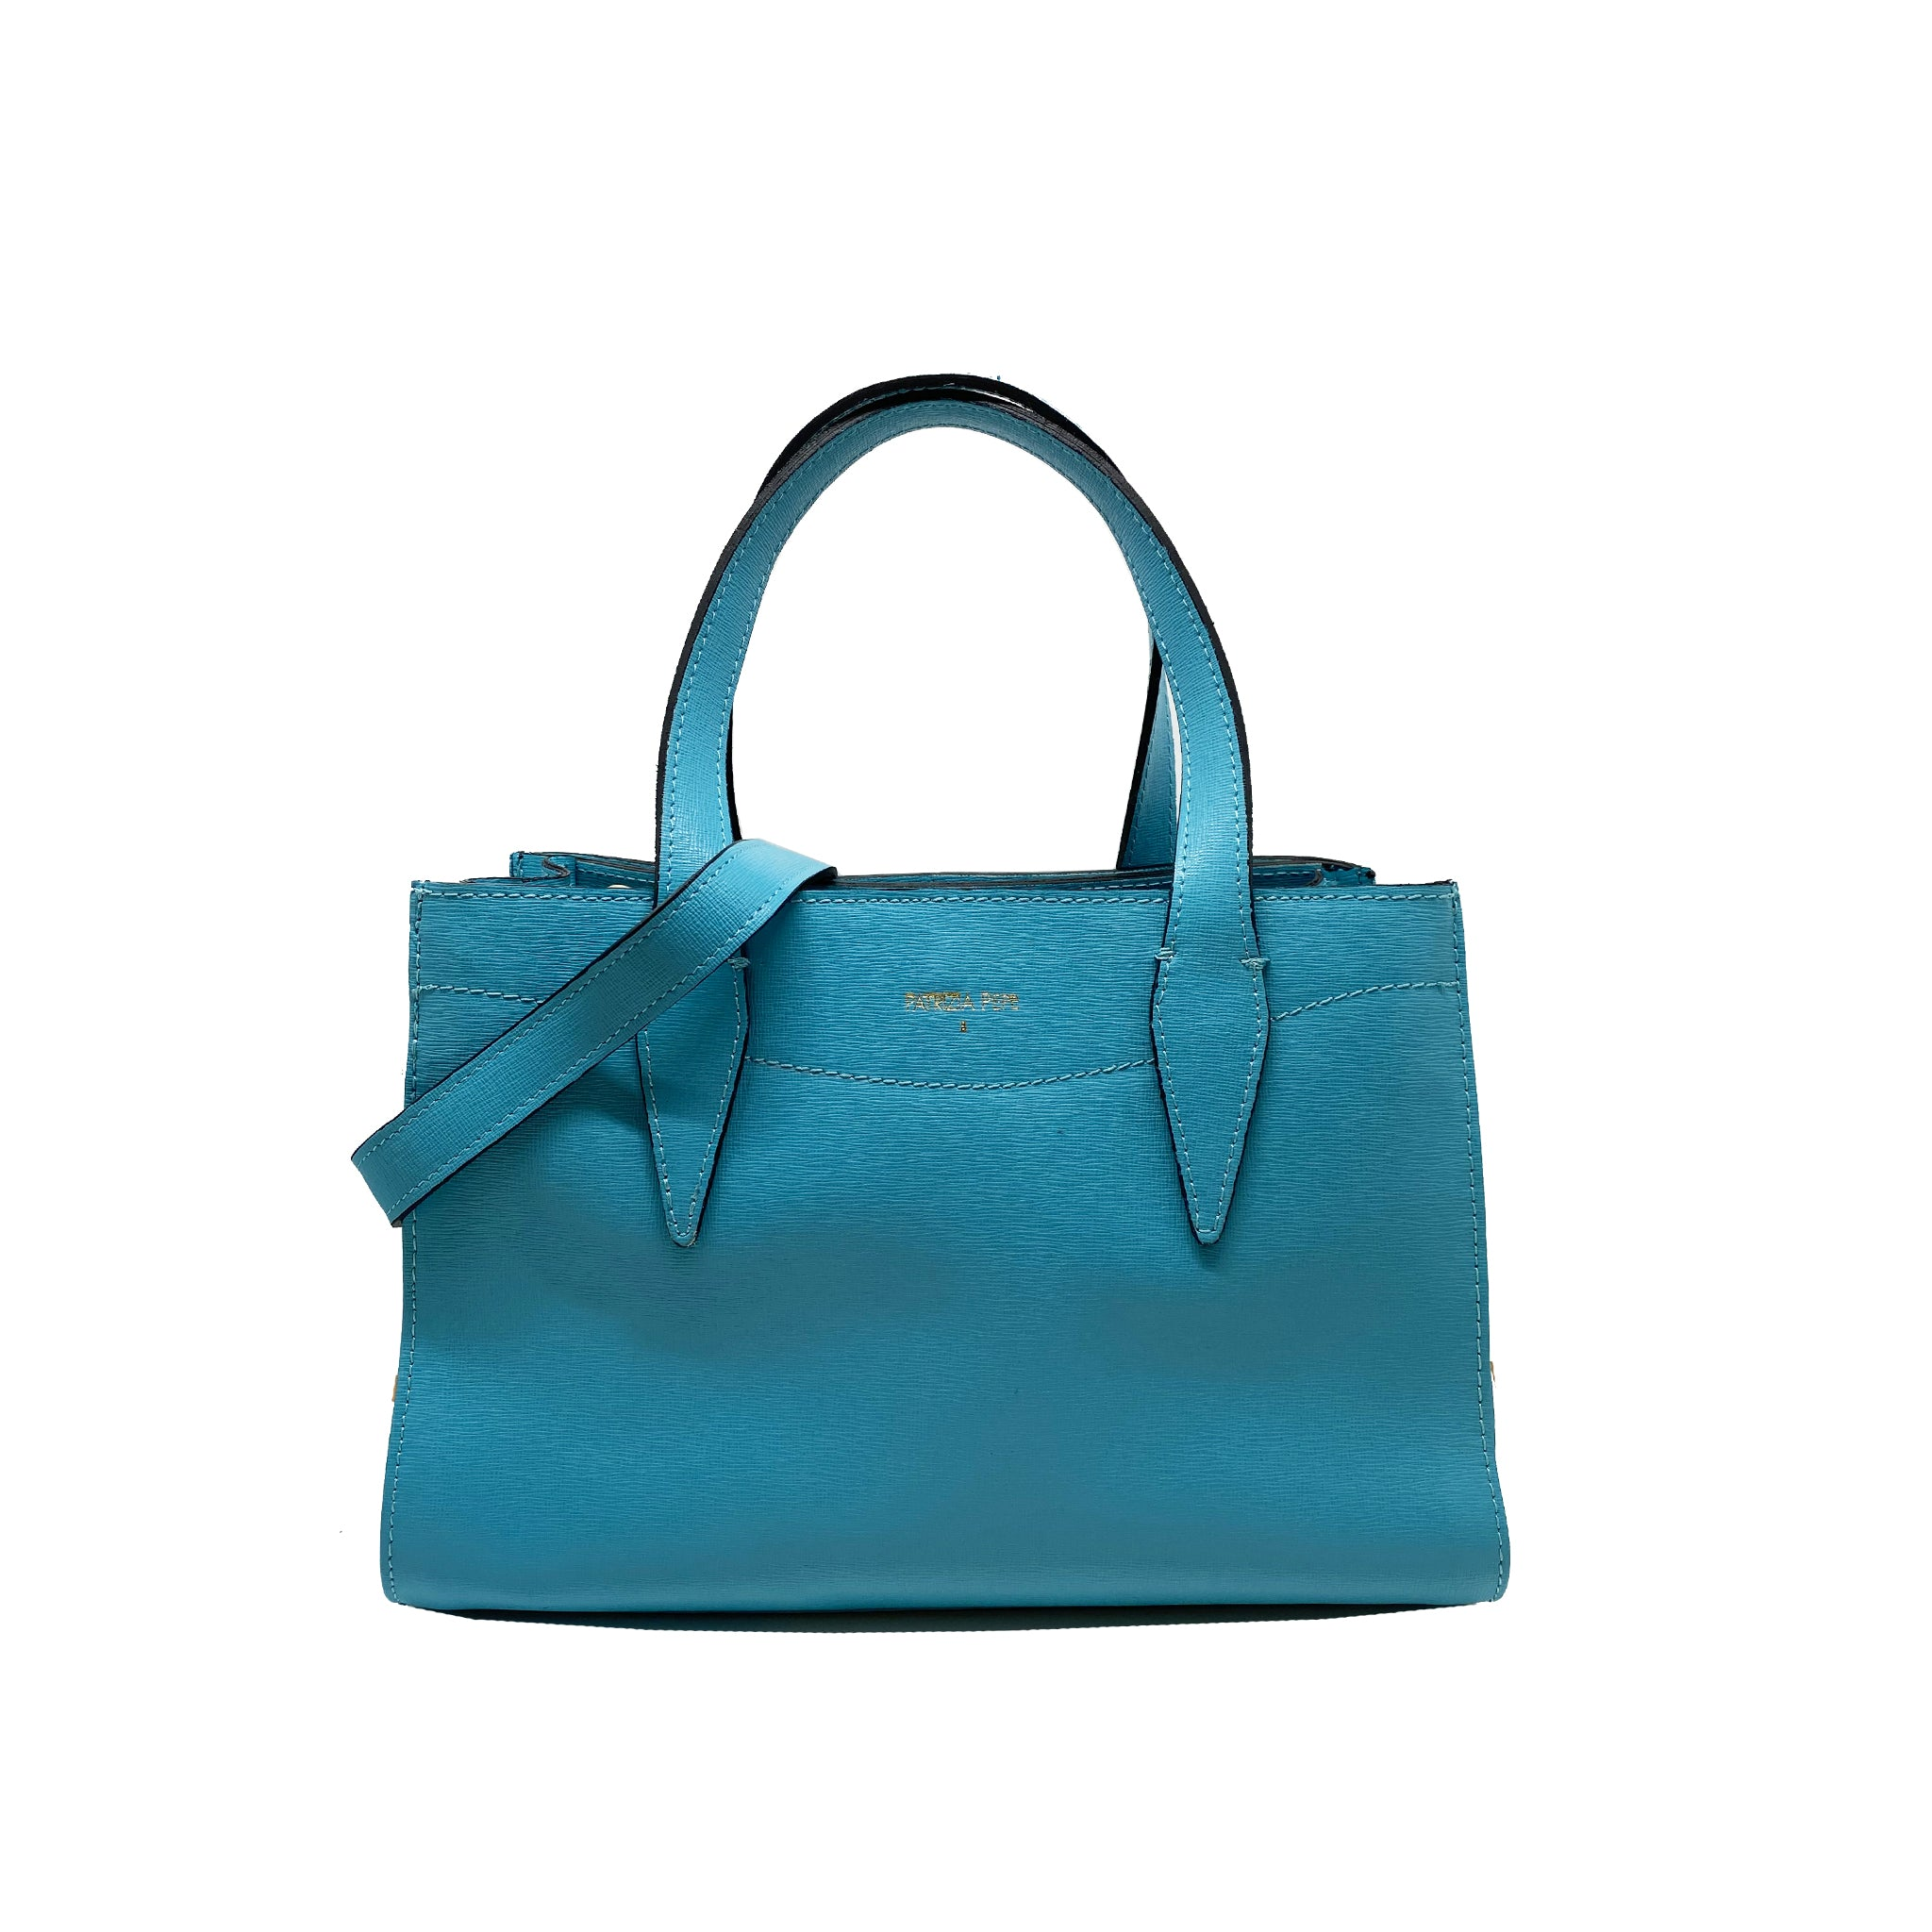 Patrizia Pepe Logo Leather Handbag